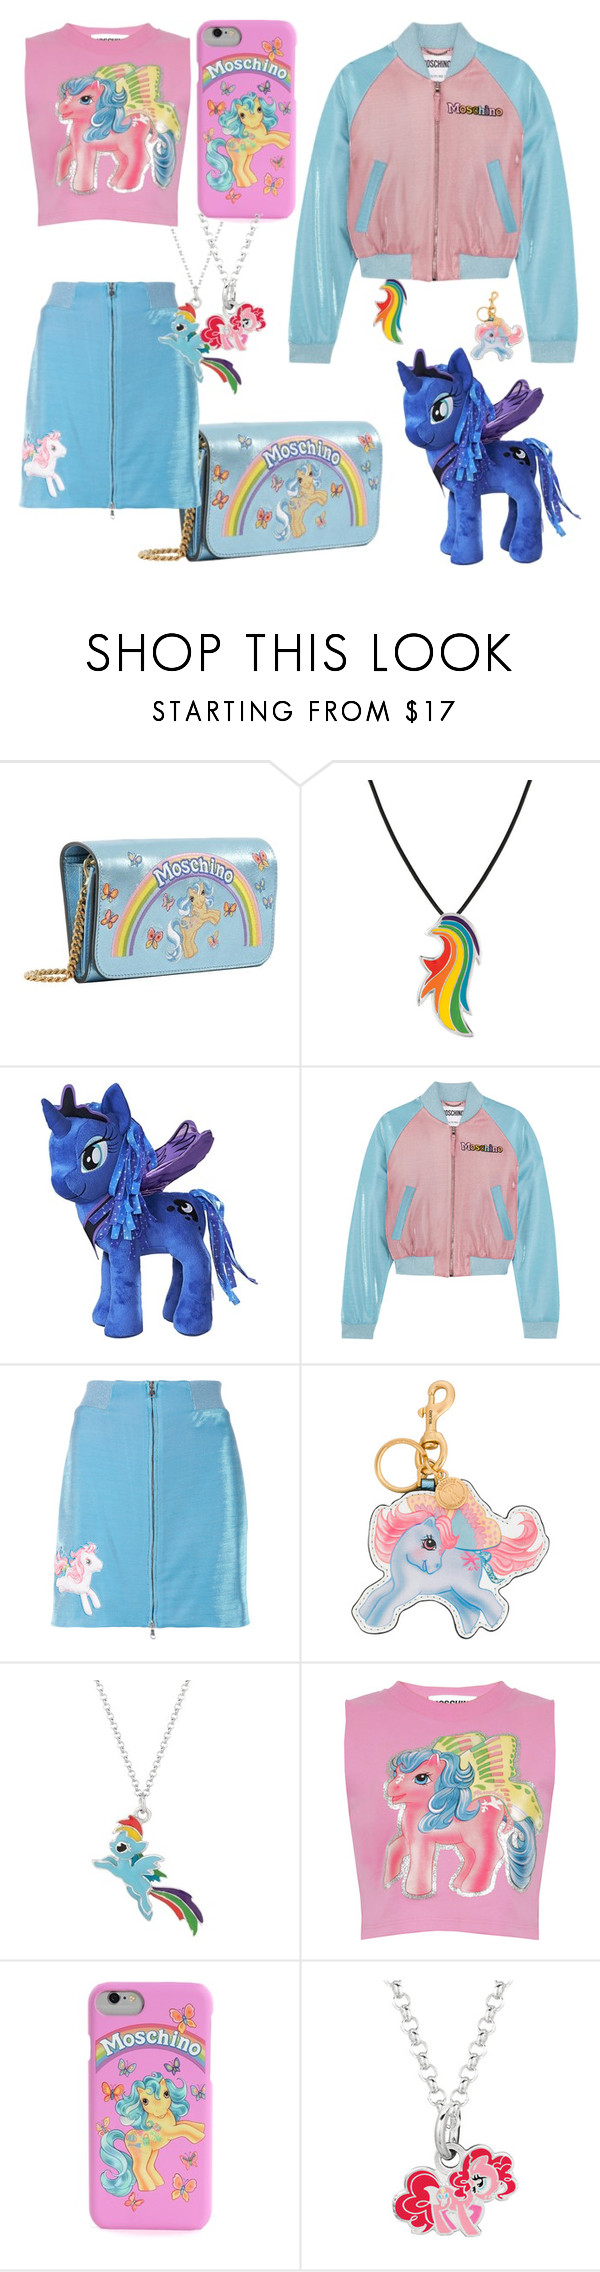 """My Little Pony!"" by qwertyuiop-sparta ❤ liked on Polyvore featuring Moschino and My Little Pony"